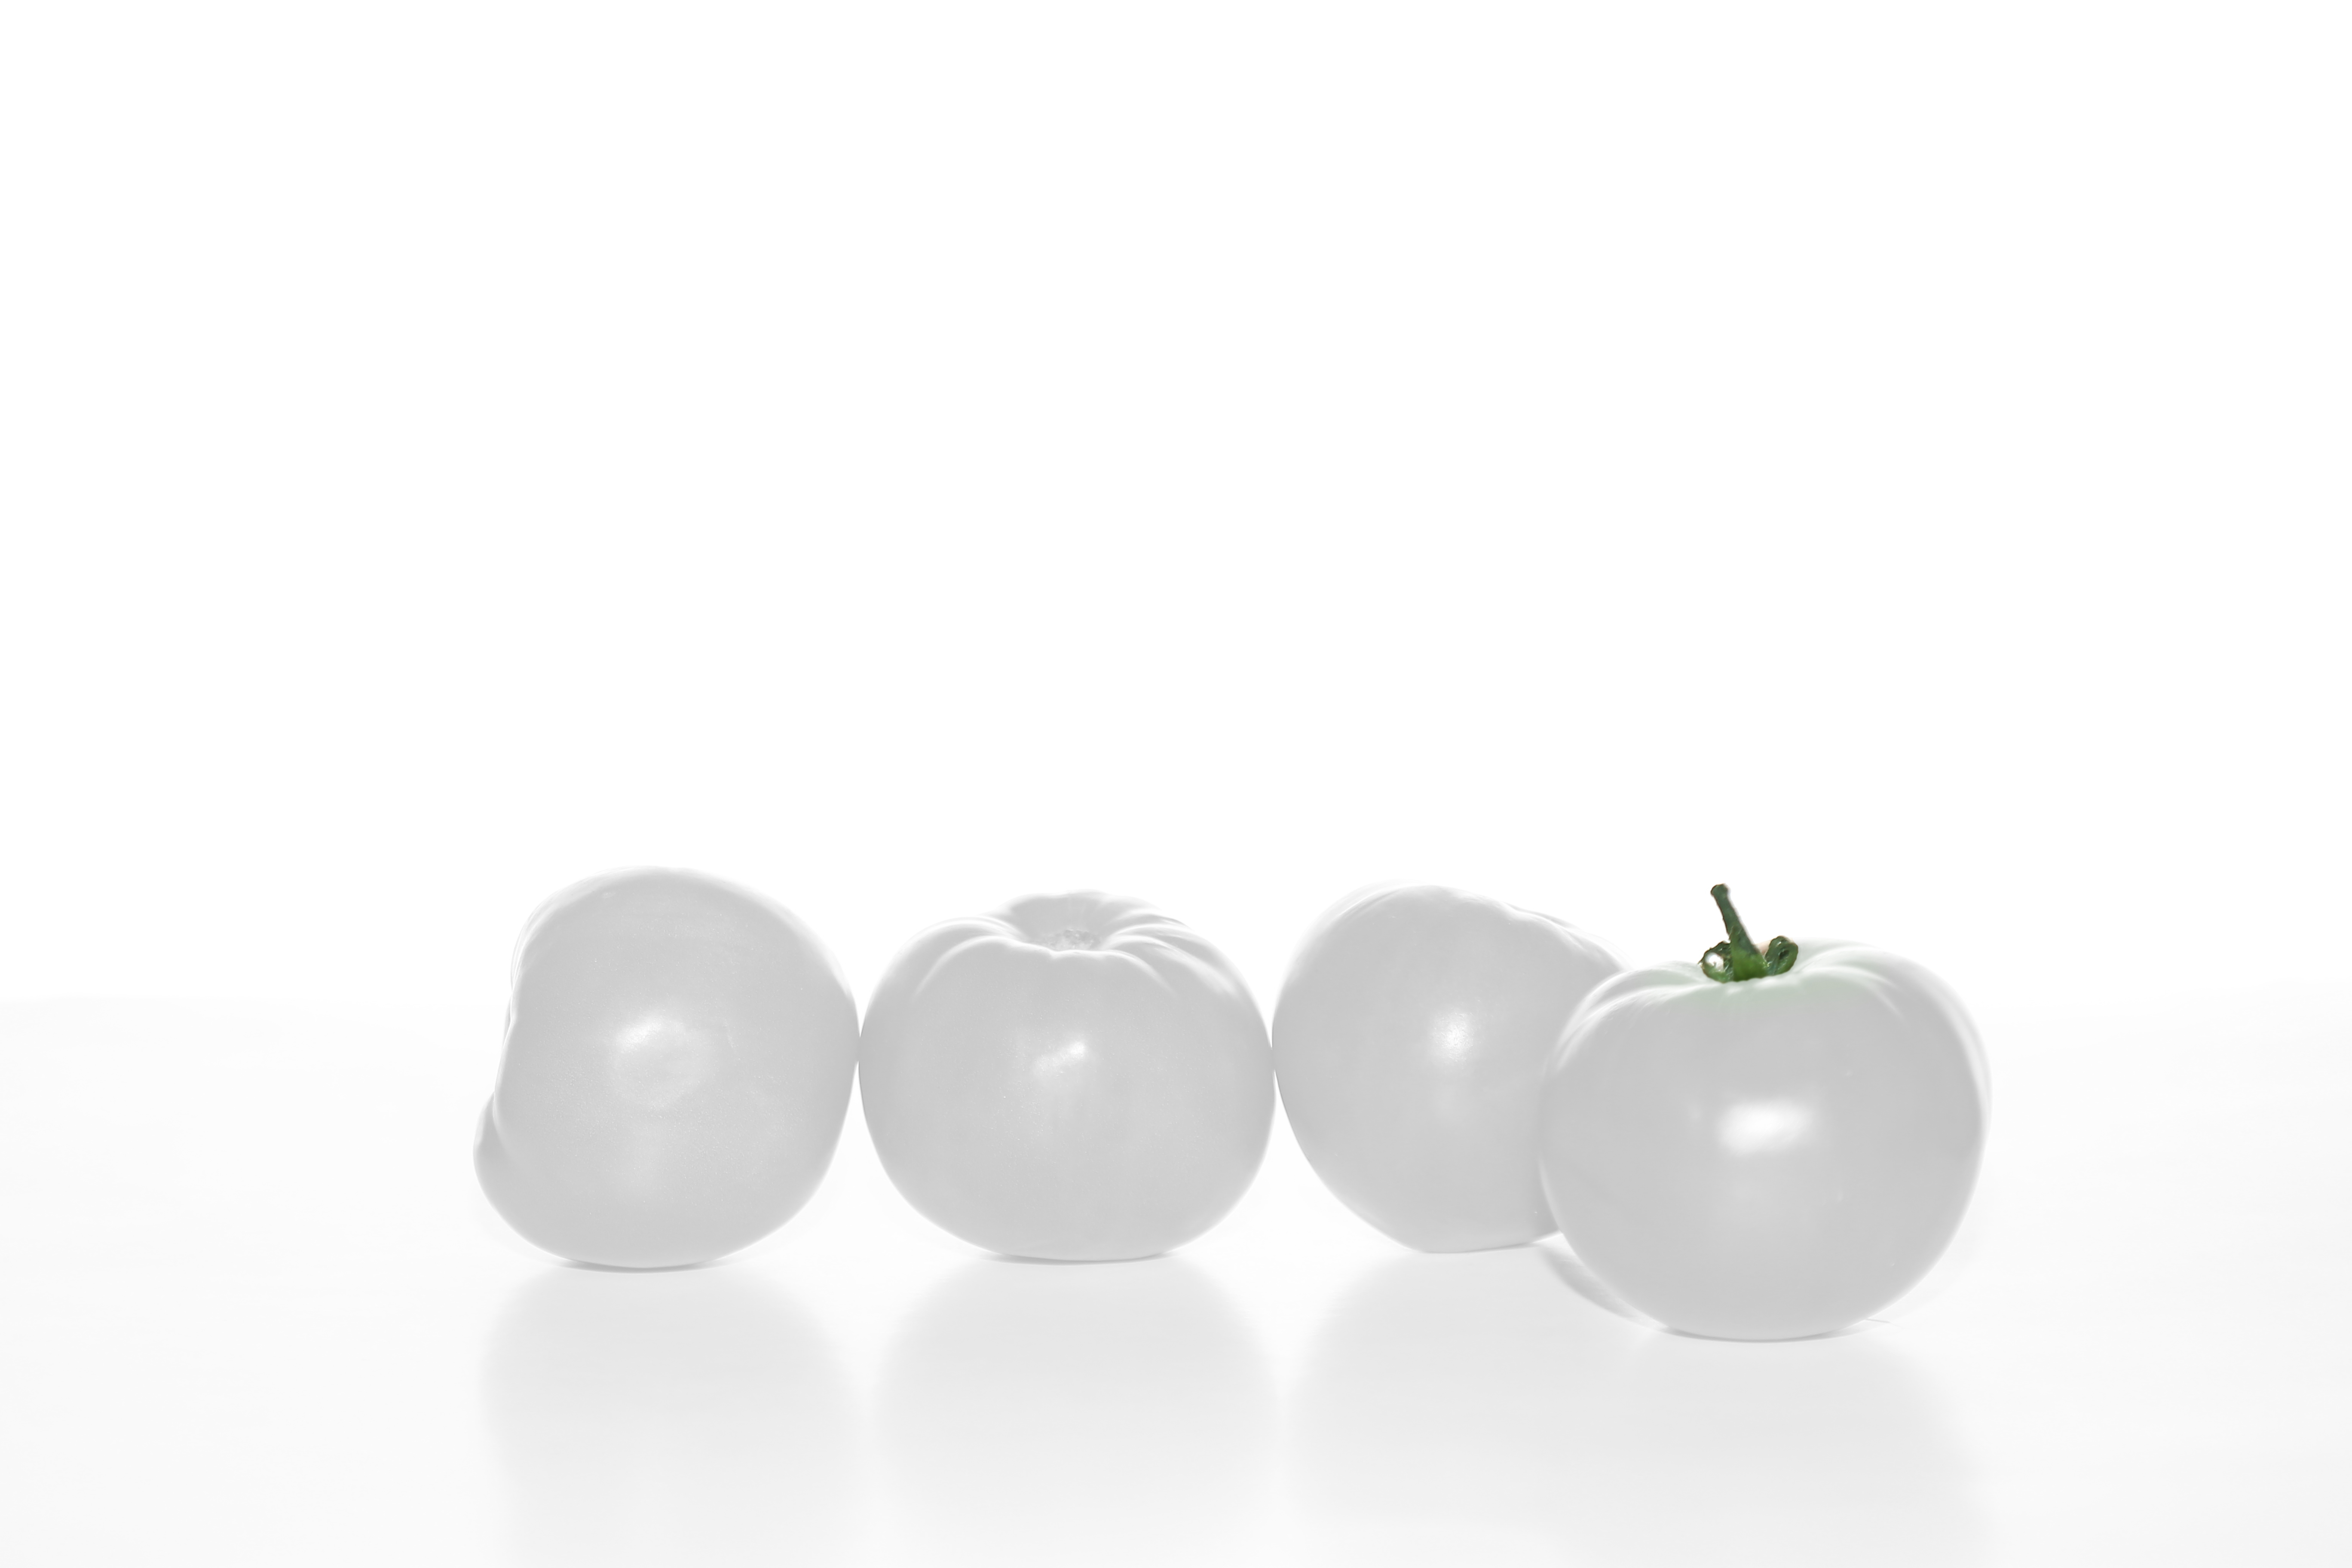 Group-of-White-Tomatoes-